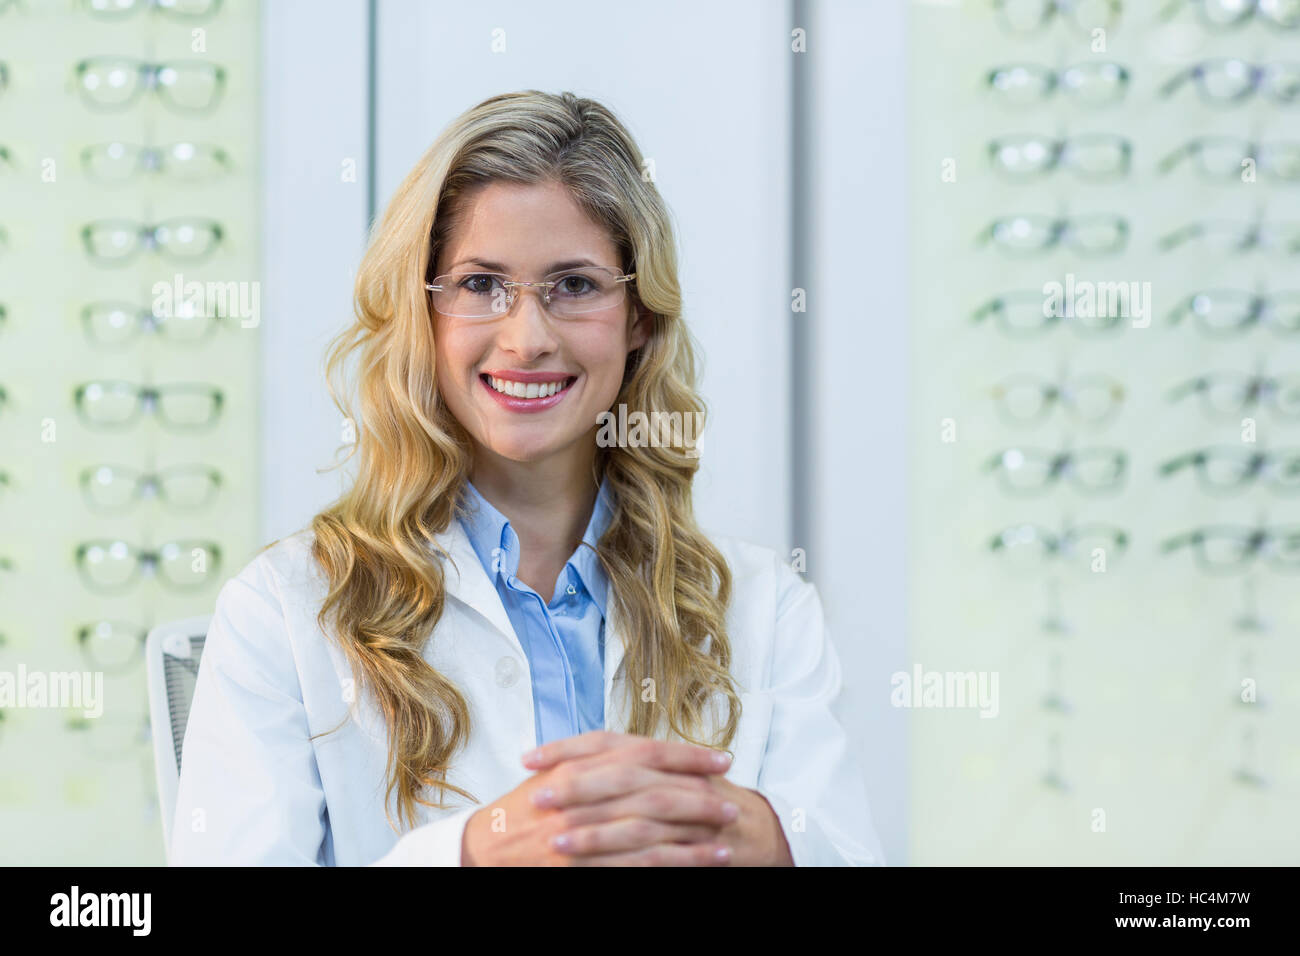 Female optometrist in ophthalmology clinic - Stock Image